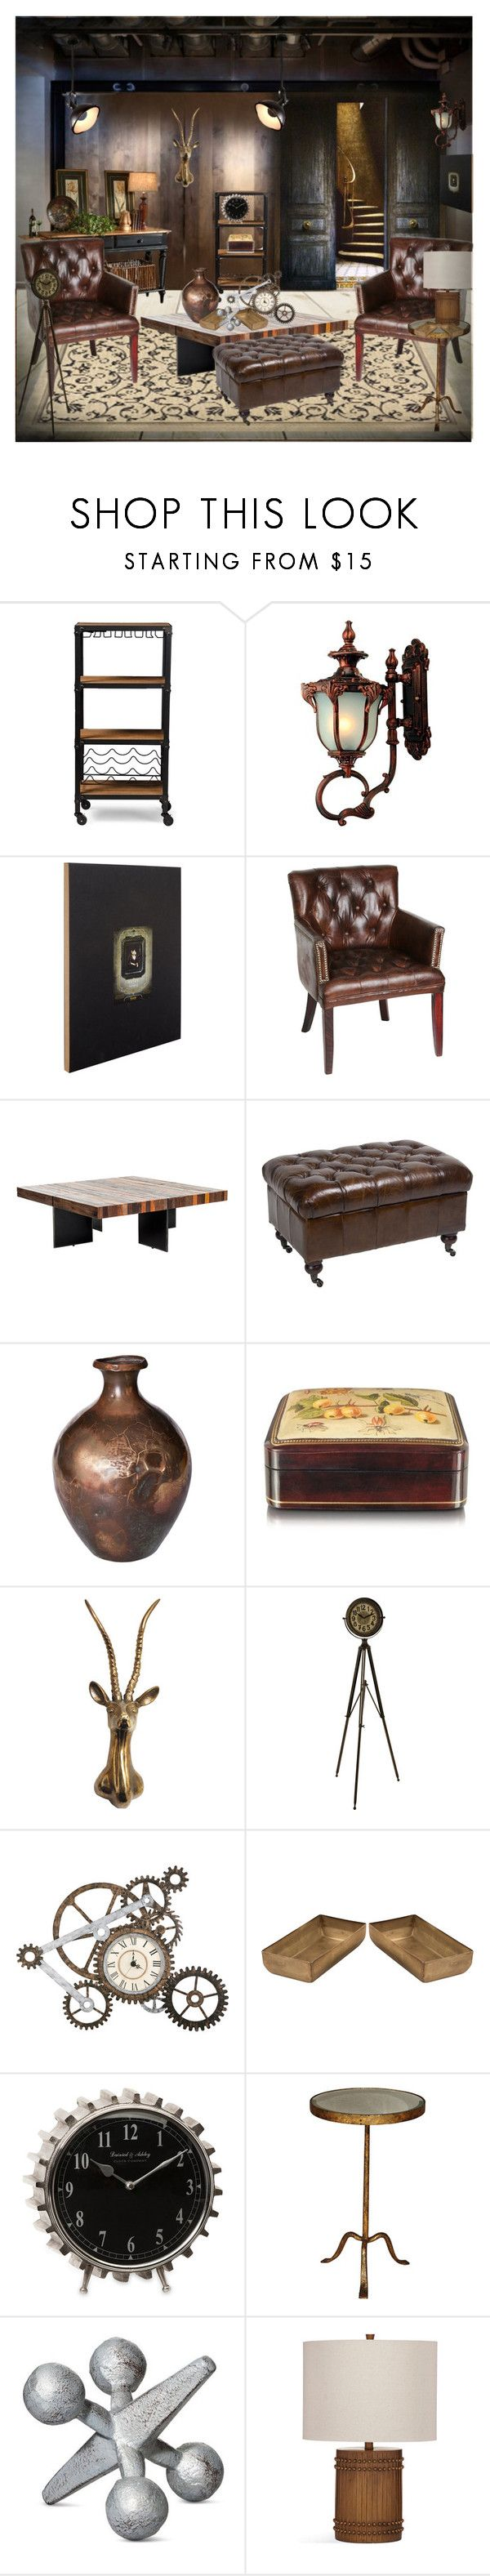 """Vintage & Industrial"" by eco-art ❤ liked on Polyvore featuring interior, interiors, interior design, home, home decor, interior decorating, Cumbria Crystal, Baxton Studio, ibride and WMF"